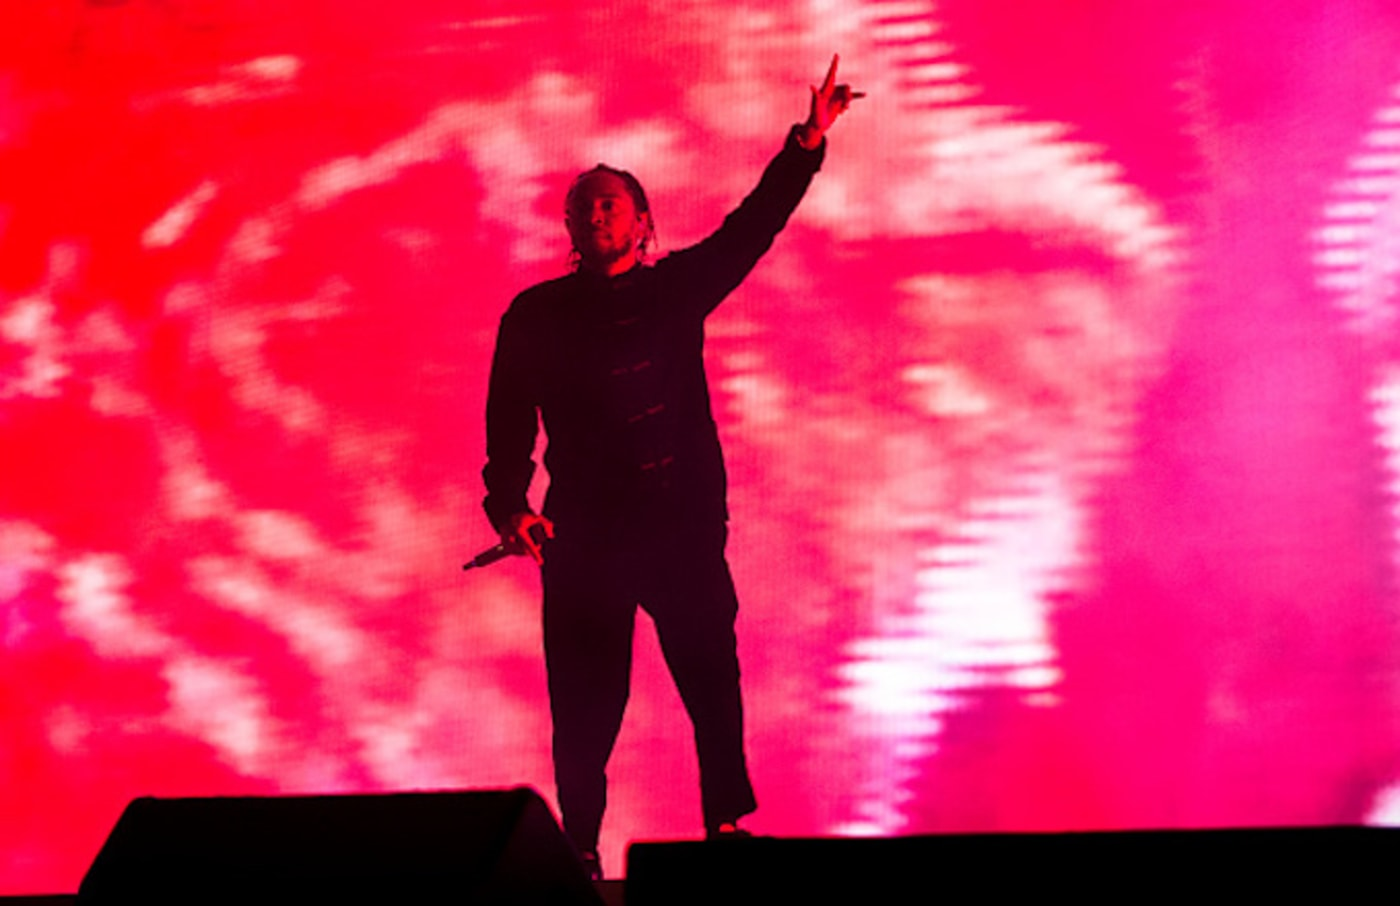 Kendrick Lamar performs on the Coachella Stage during day 3 (Weekend 2)